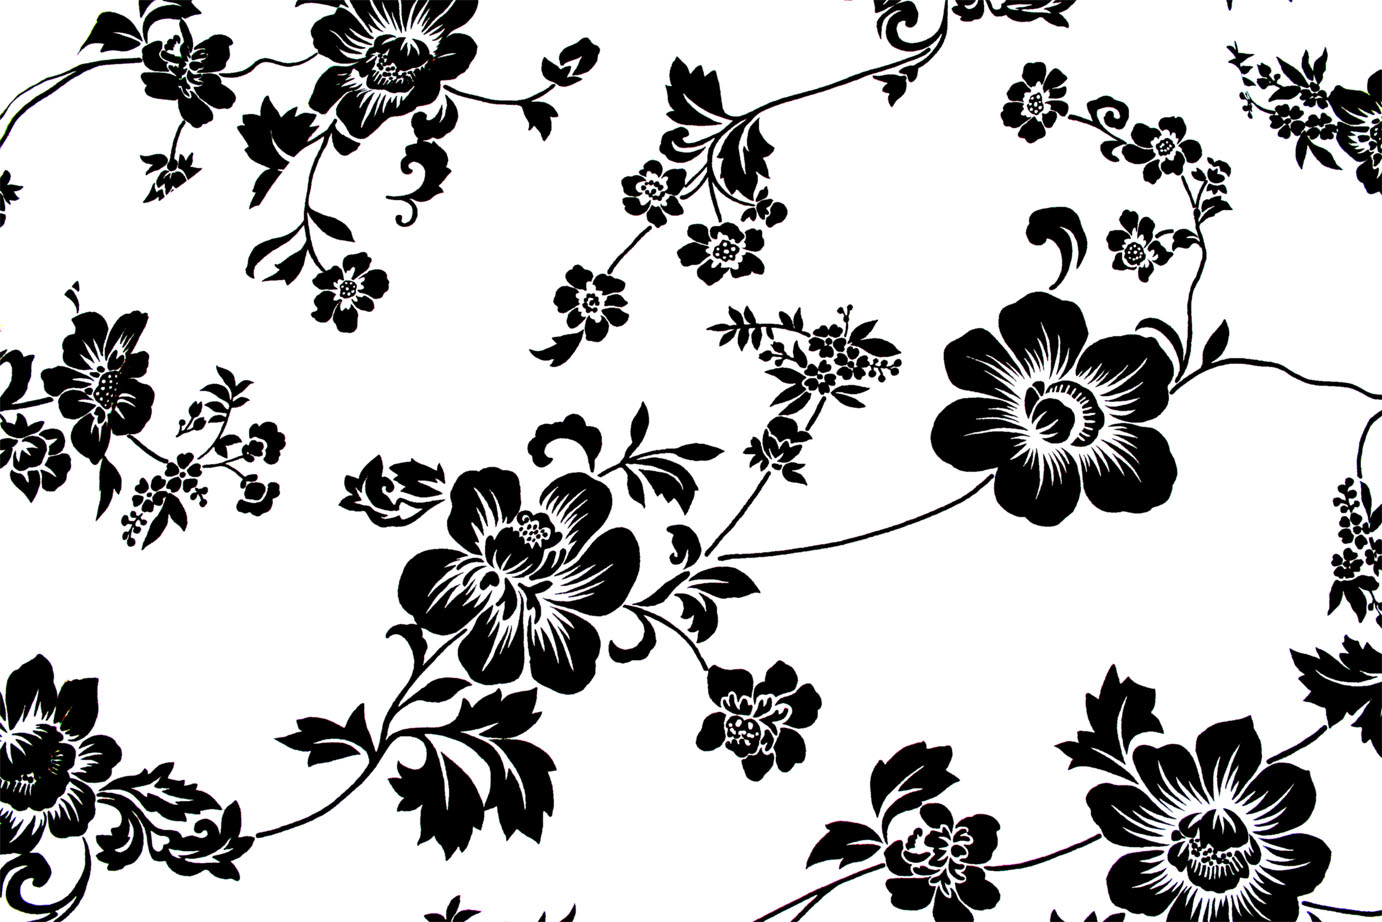 Black and white bed sheets texture - Seamless Free Floral Textures 11